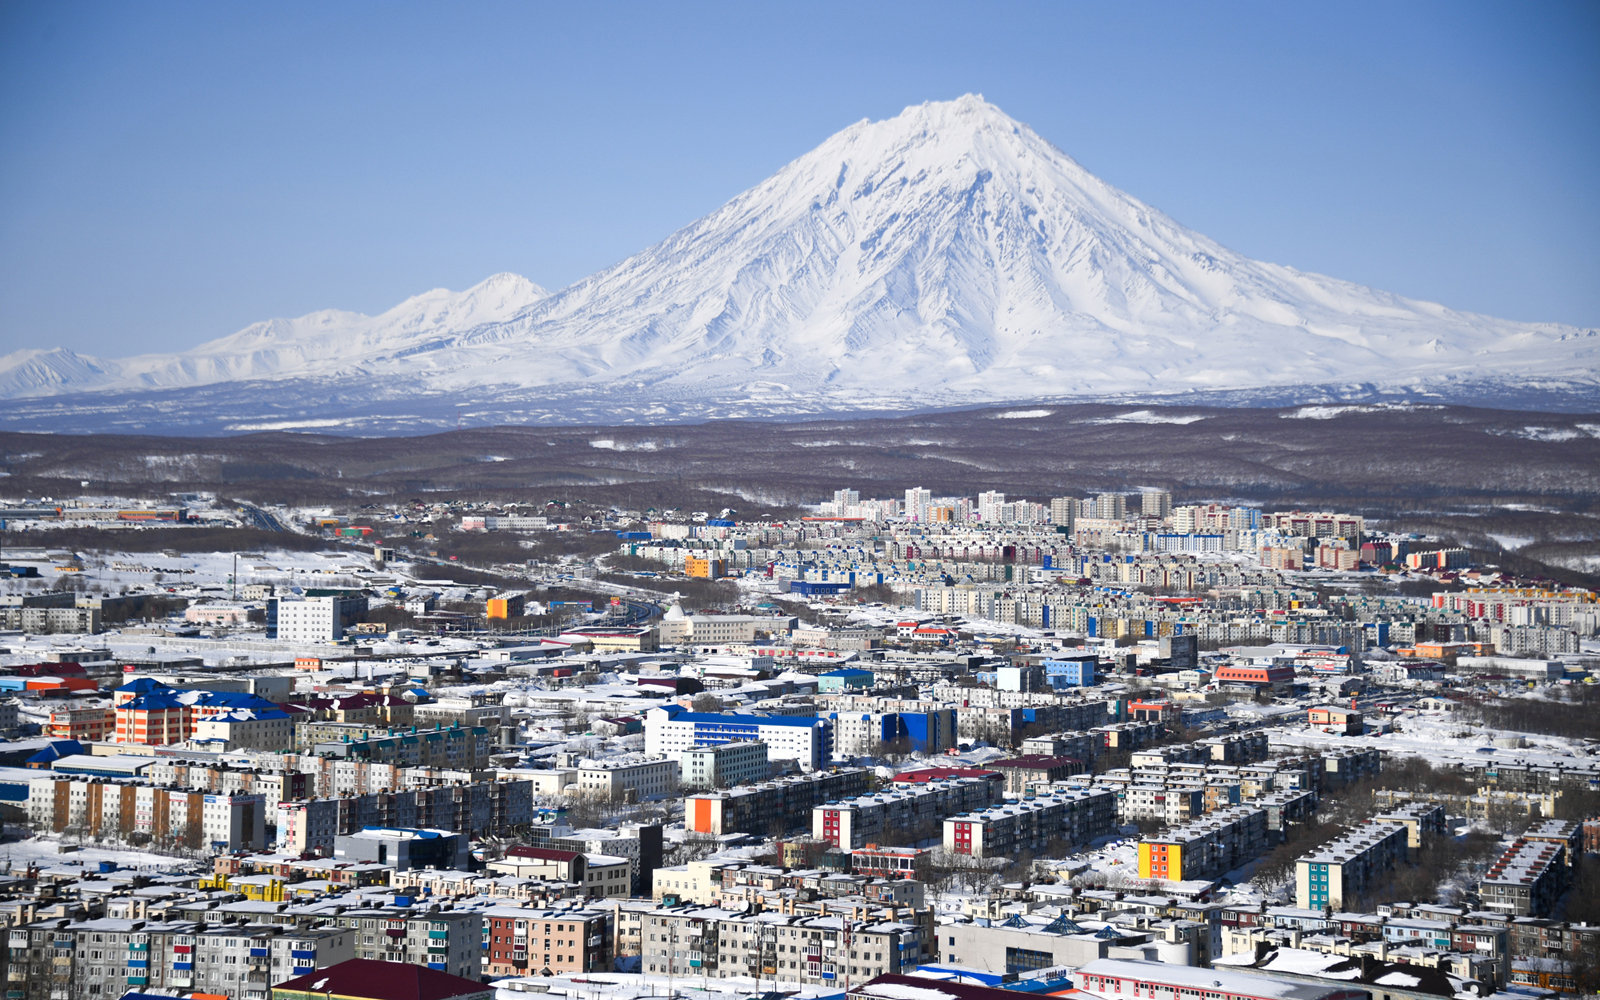 The city of Petropavlovsk-Kamchatsky from Mishennaya Sopka